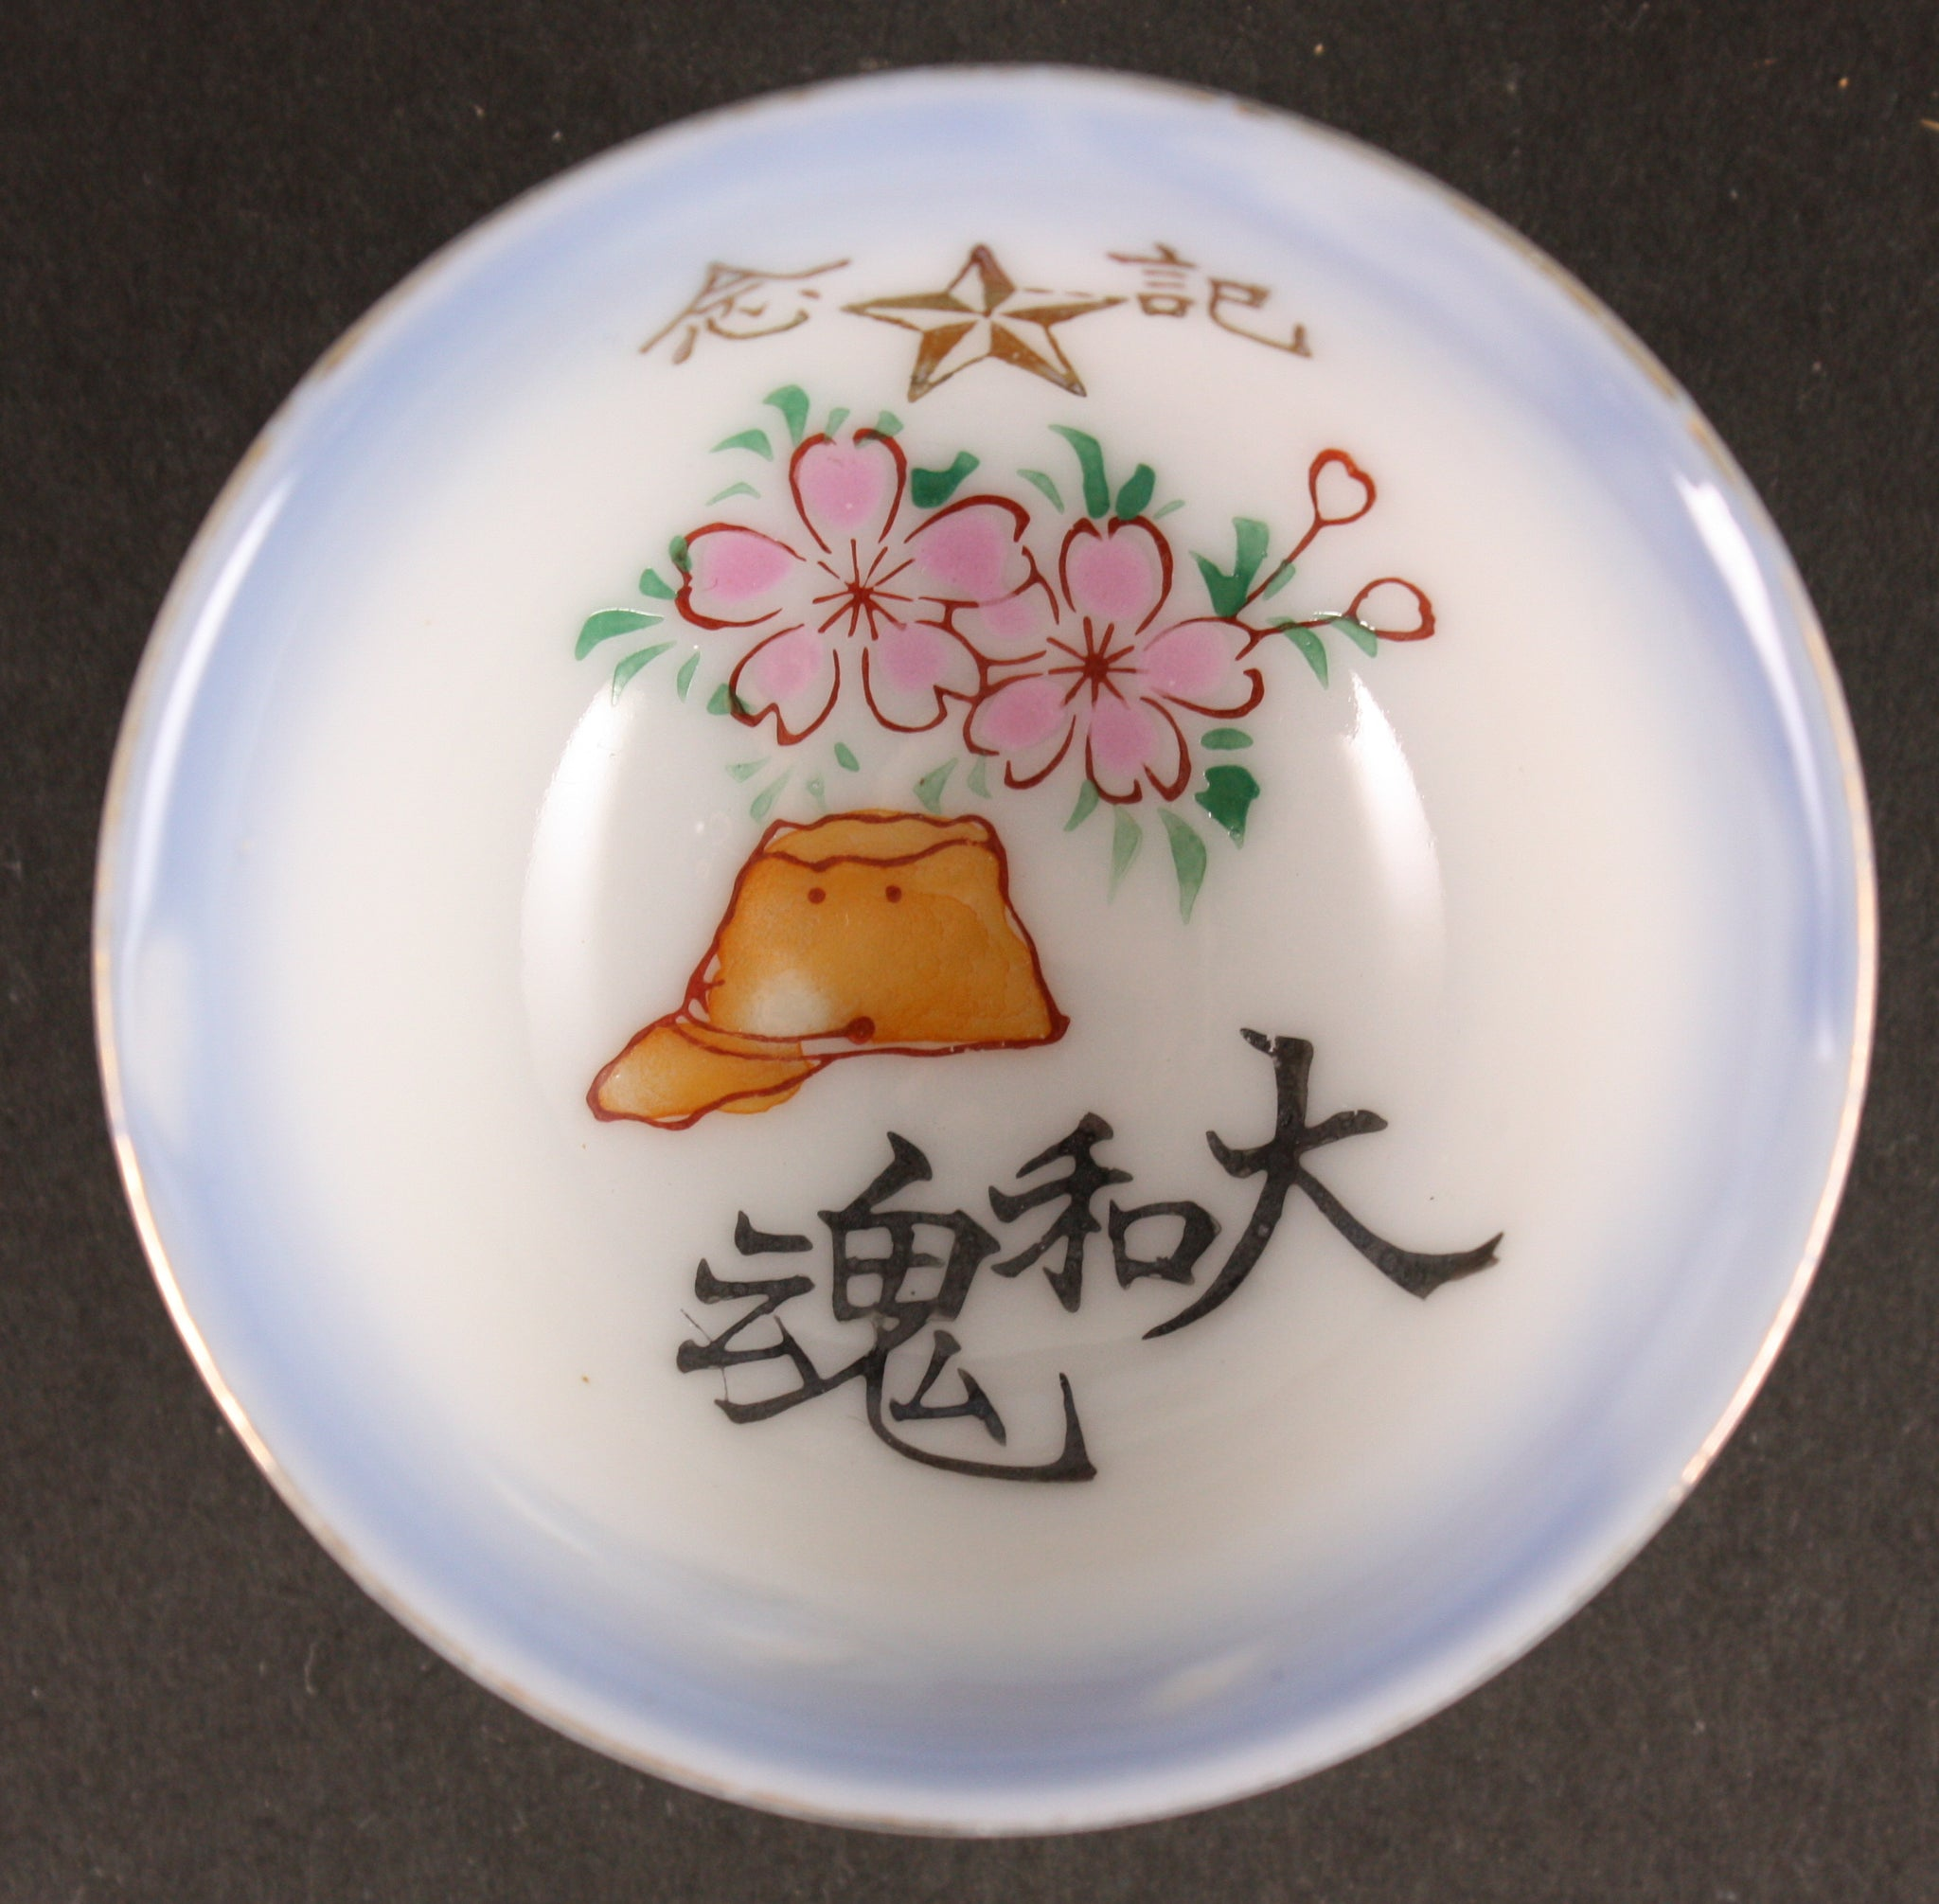 Rare Antique Japanese Military Summer Cap Army Sake Cup